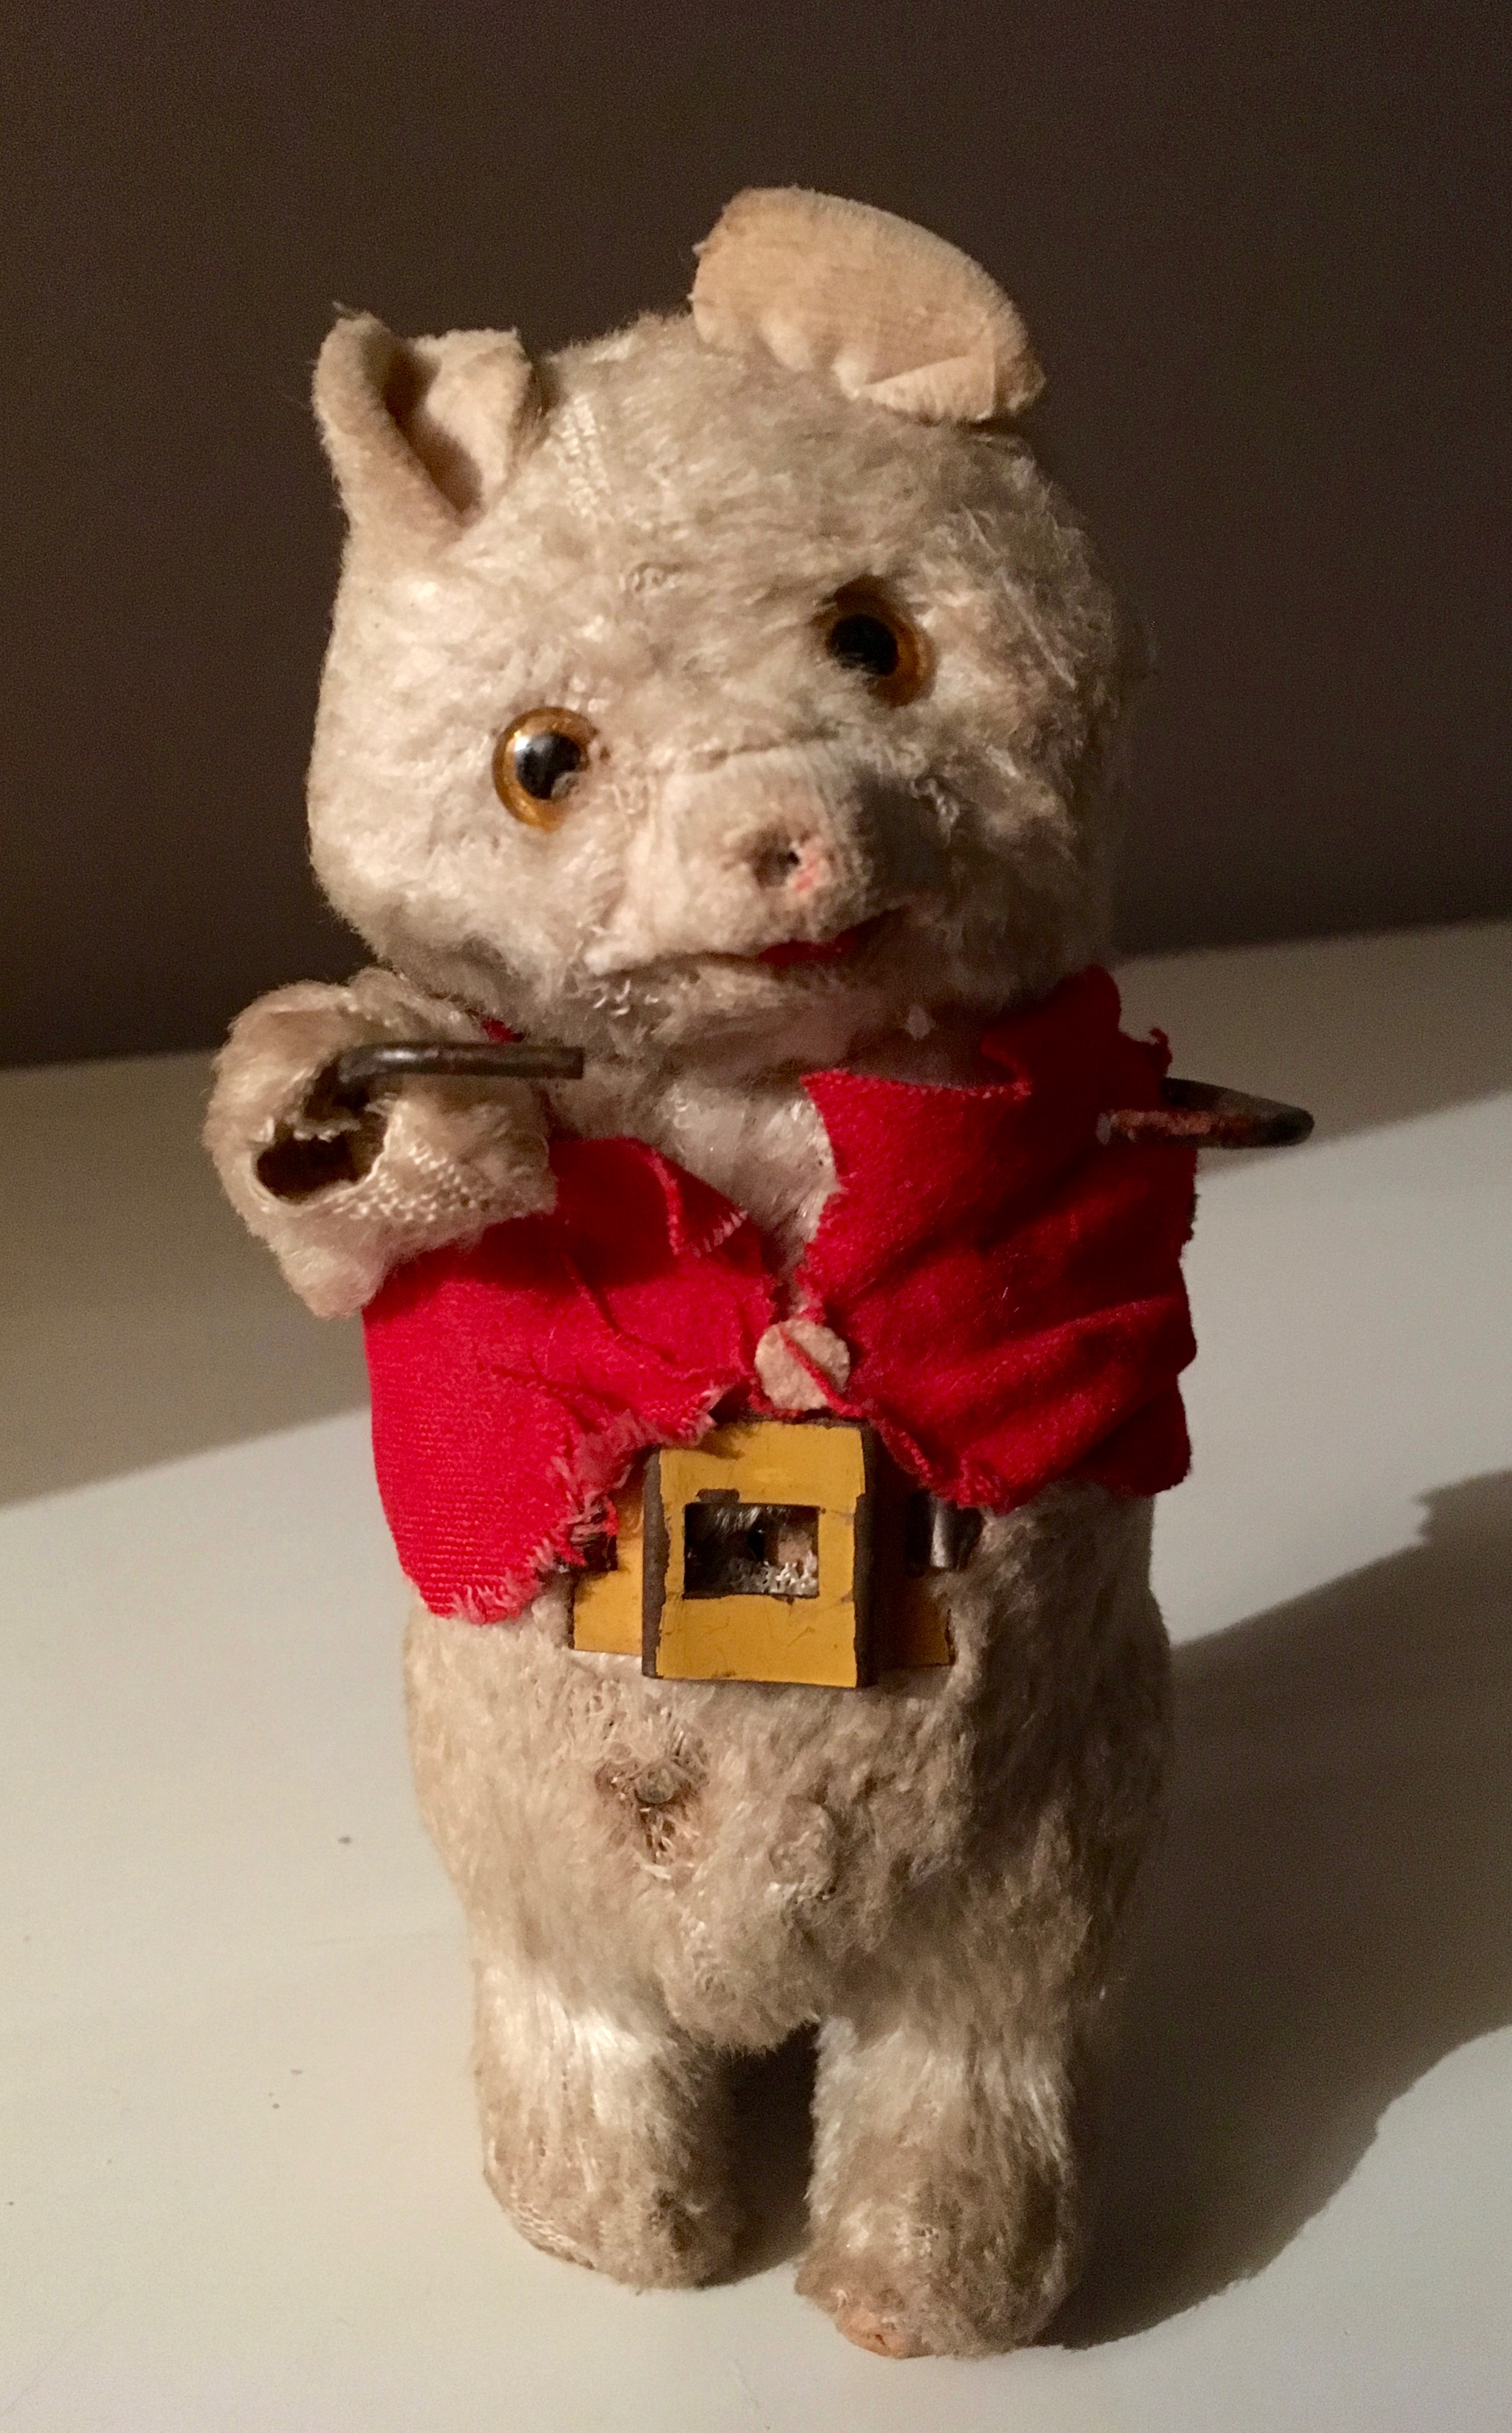 wind up teddy bear without drums